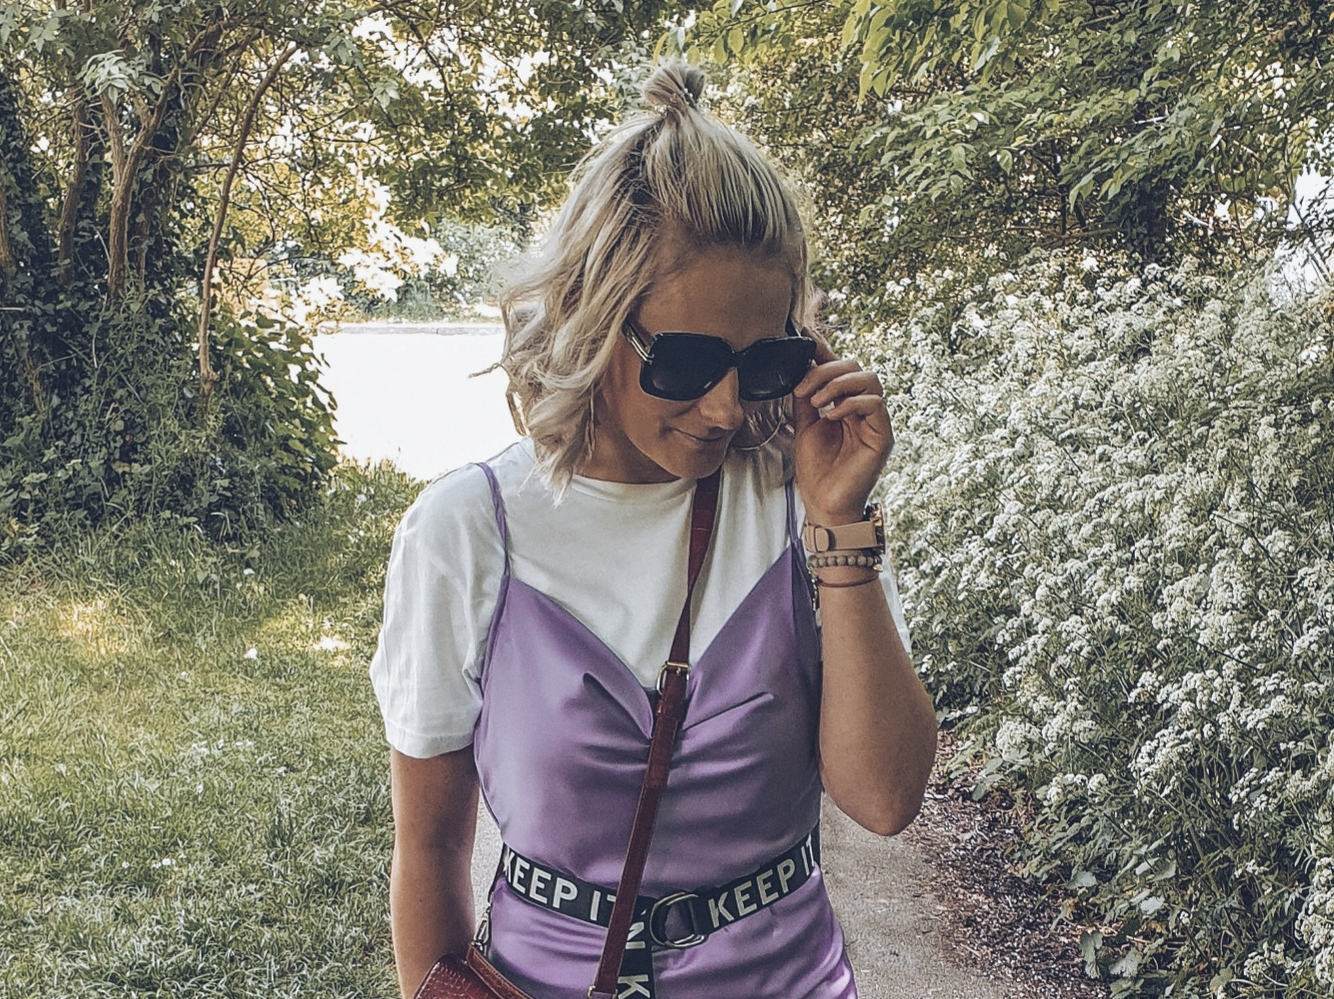 Millennial Purple & slip dress czyli sukienka idealna na wiosne